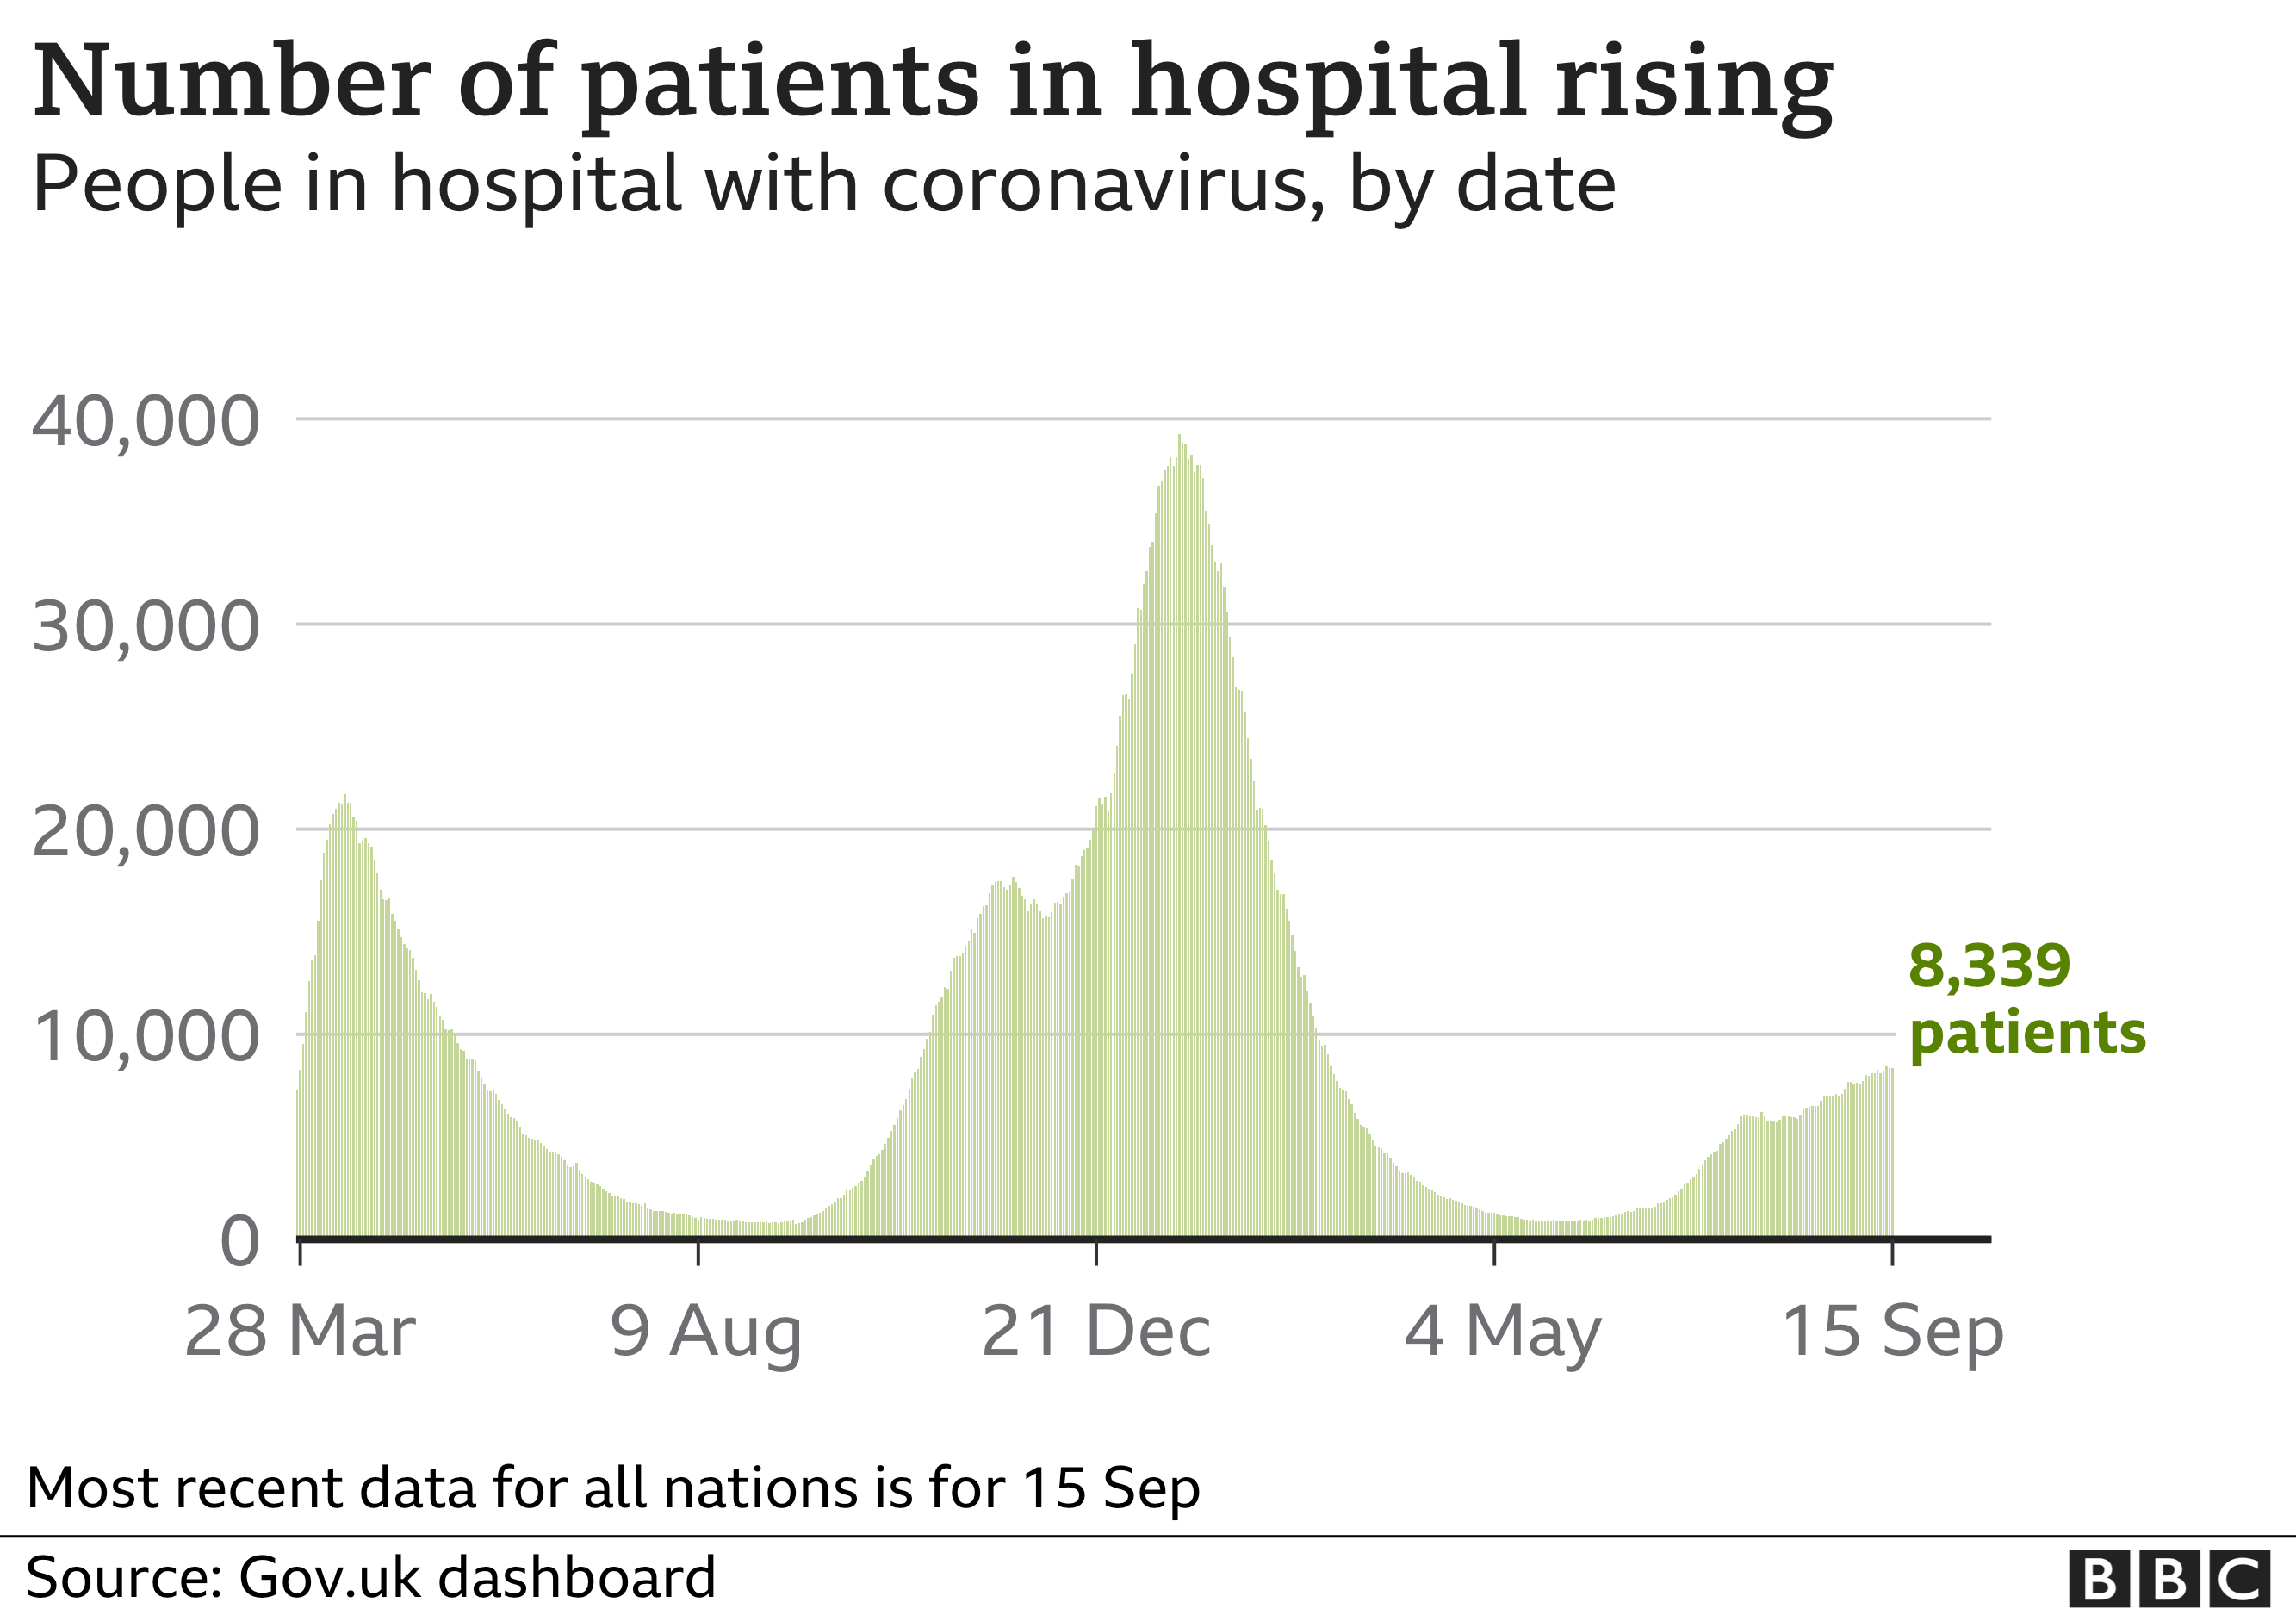 Chart showing that the number of patients in hospital has been rising